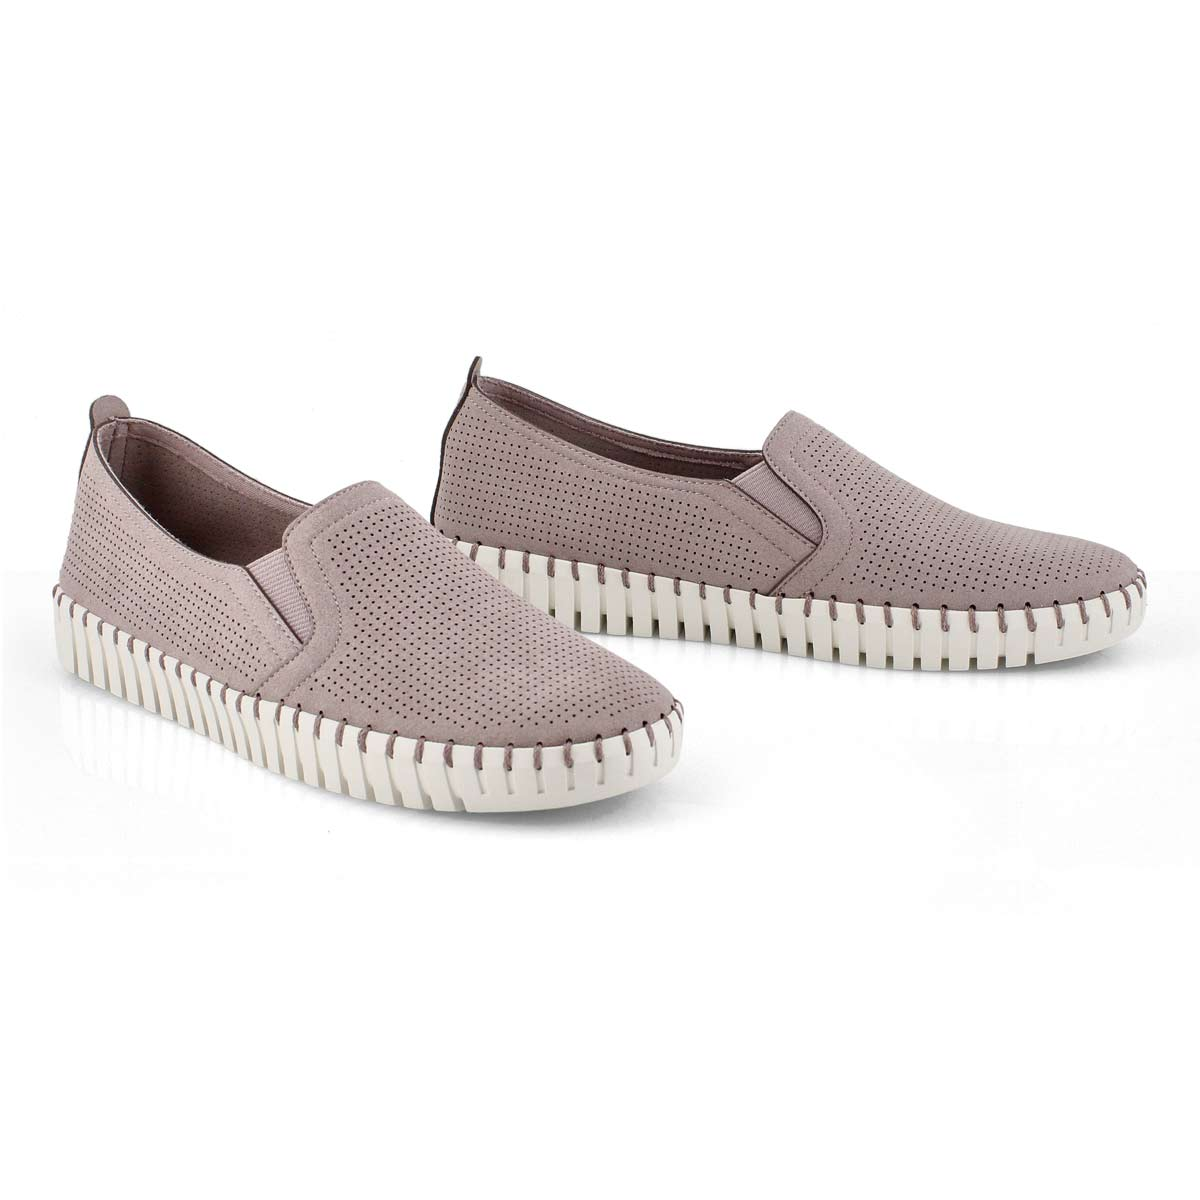 Lds Sepulveda Blvd lilac slip on sneaker